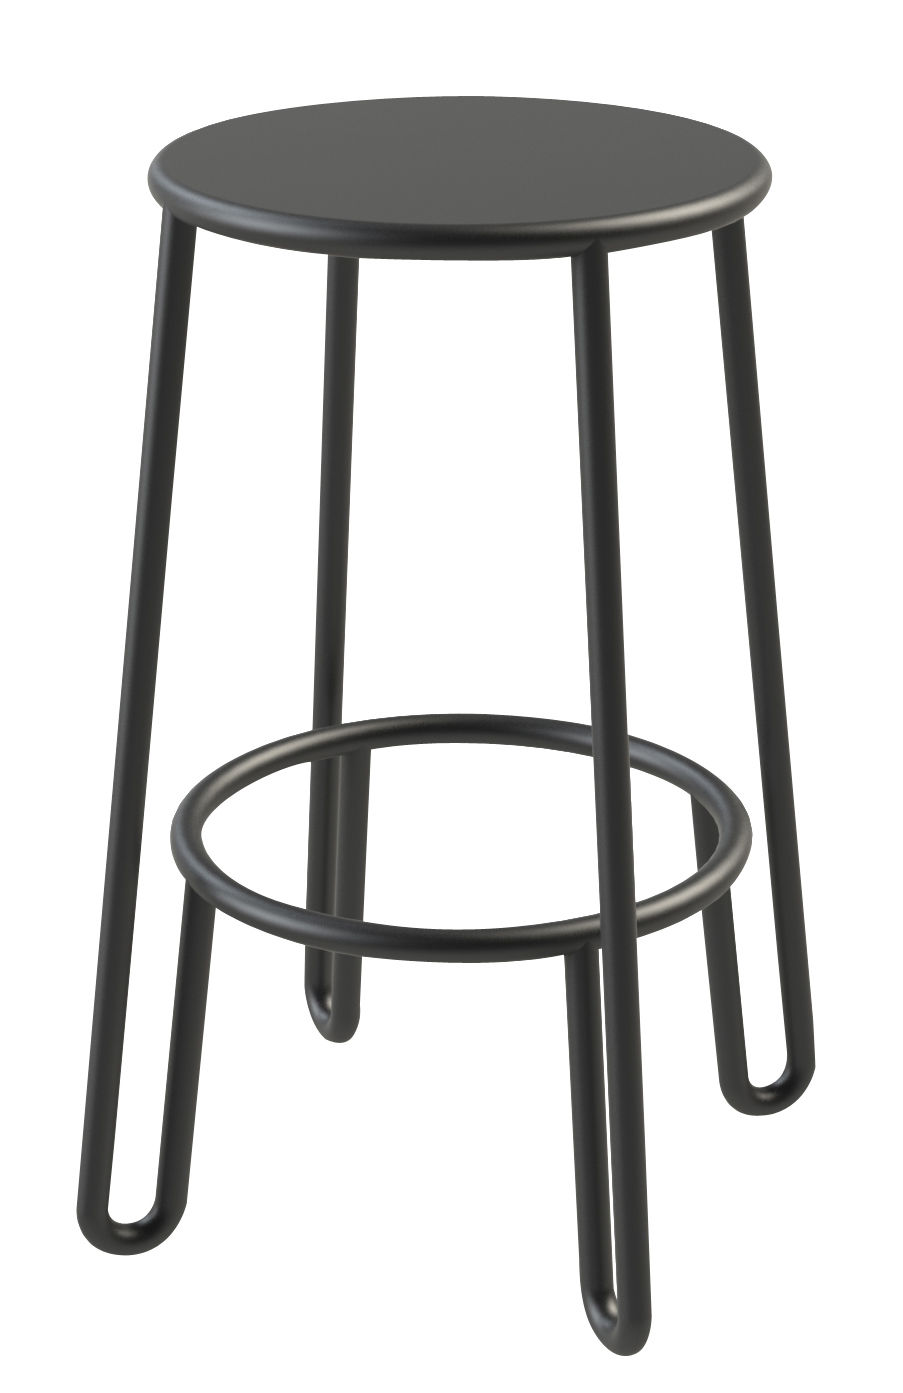 tabouret de bar huggy h 65 cm aluminium carbone maiori made in design. Black Bedroom Furniture Sets. Home Design Ideas